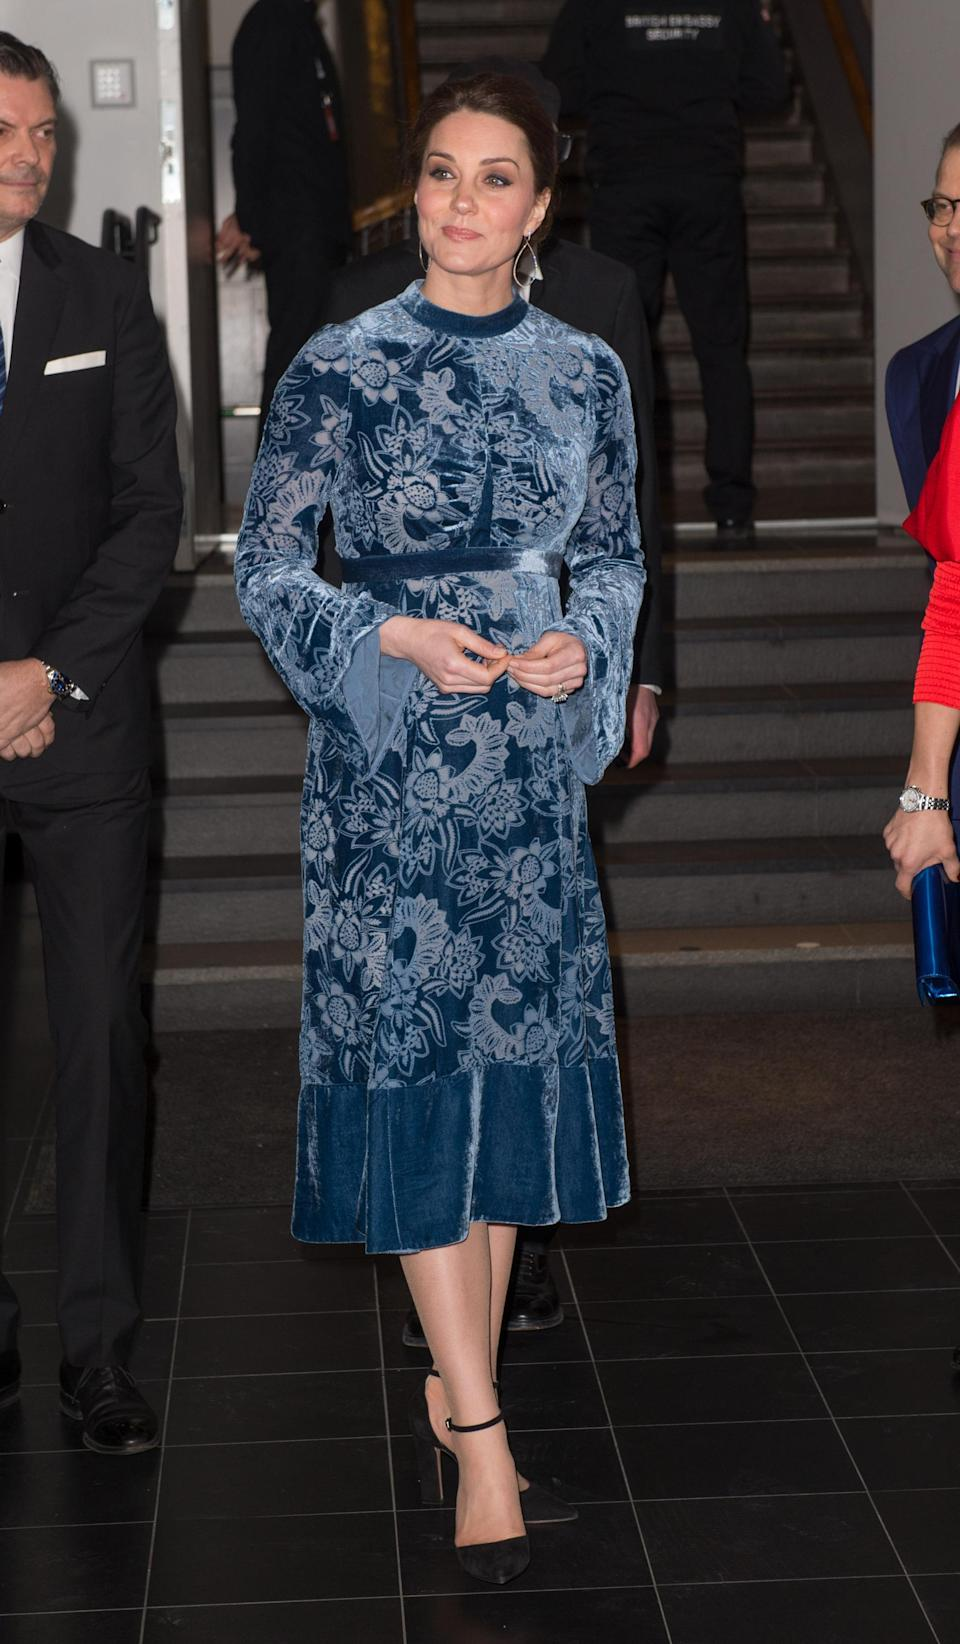 <p><strong>The occassion:</strong> A reception to celebrate Swedish culture at the Fotografiska Gallery on day two of the Duke and Duchess's royal visit to Sweden and Norway.<br><strong>The look: </strong>A blue velvet Erdem gown with floral patterning.<br>[Photo: Getty] </p>